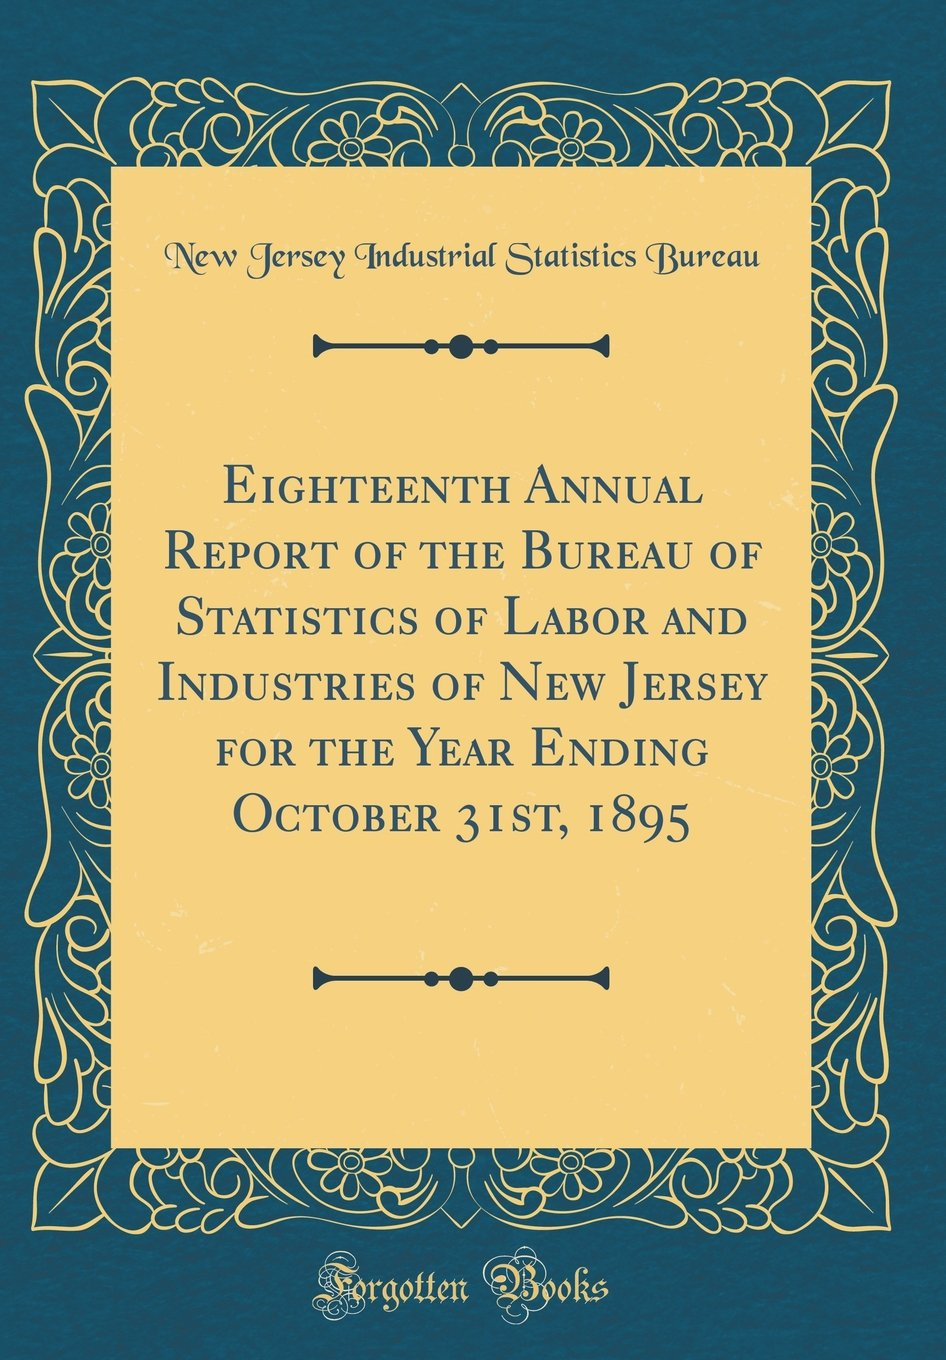 Eighteenth Annual Report of the Bureau of Statistics of Labor and Industries of New Jersey for the Year Ending October 31st, 1895 (Classic Reprint) pdf